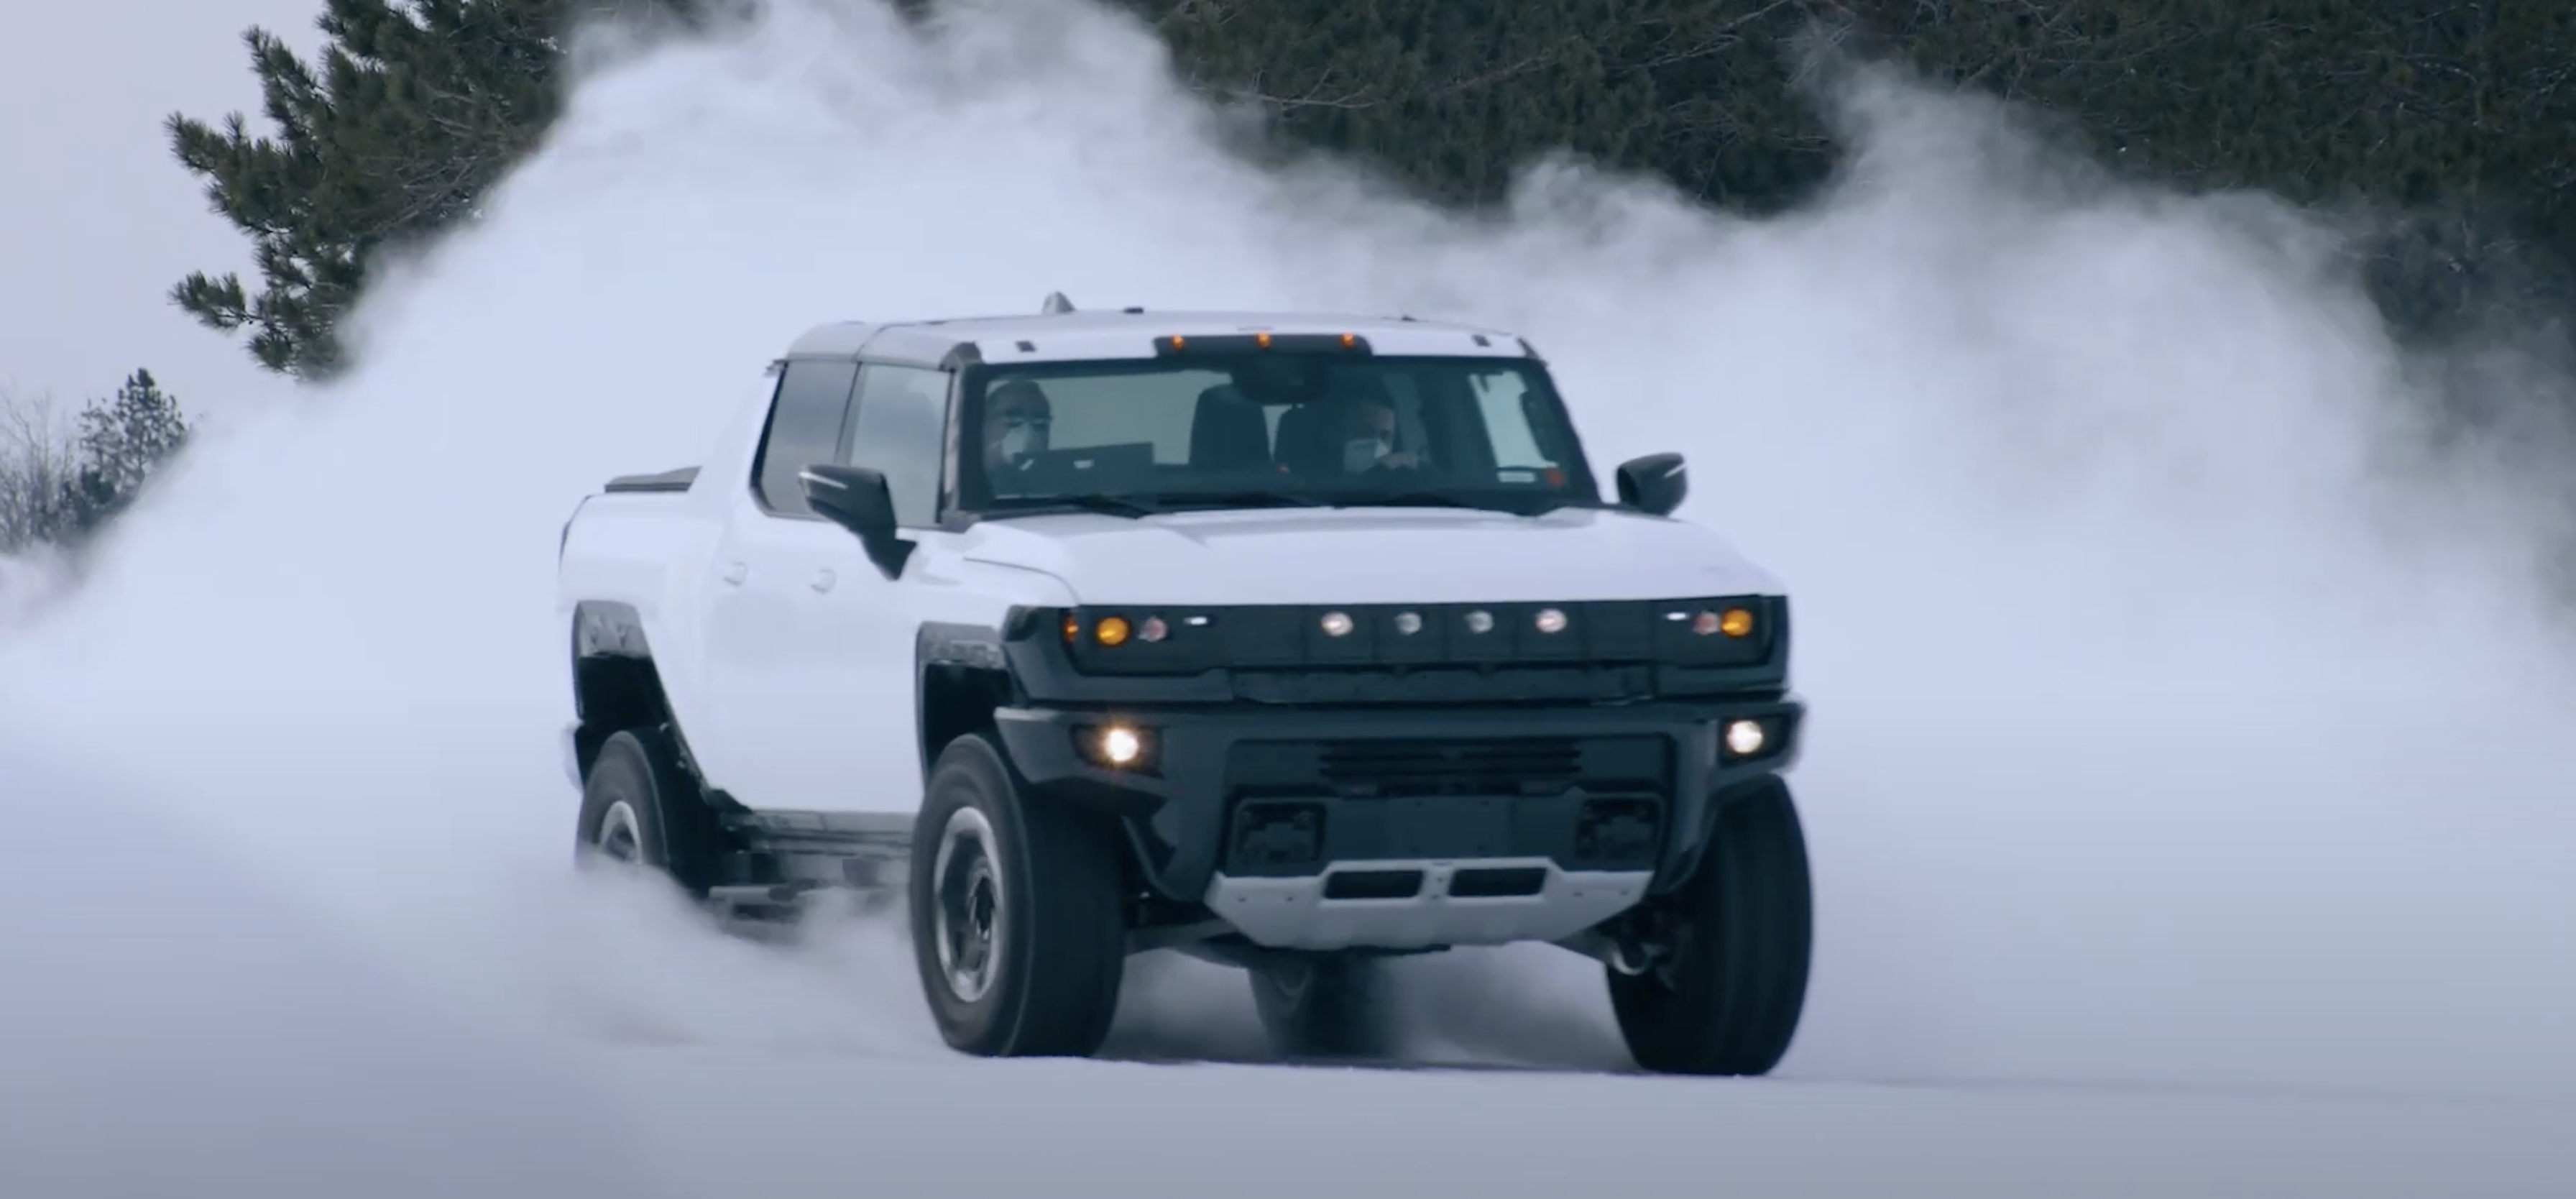 GM releases new Hummer EV electric pickup testing footage, announces SUV  version unveil - Electrek